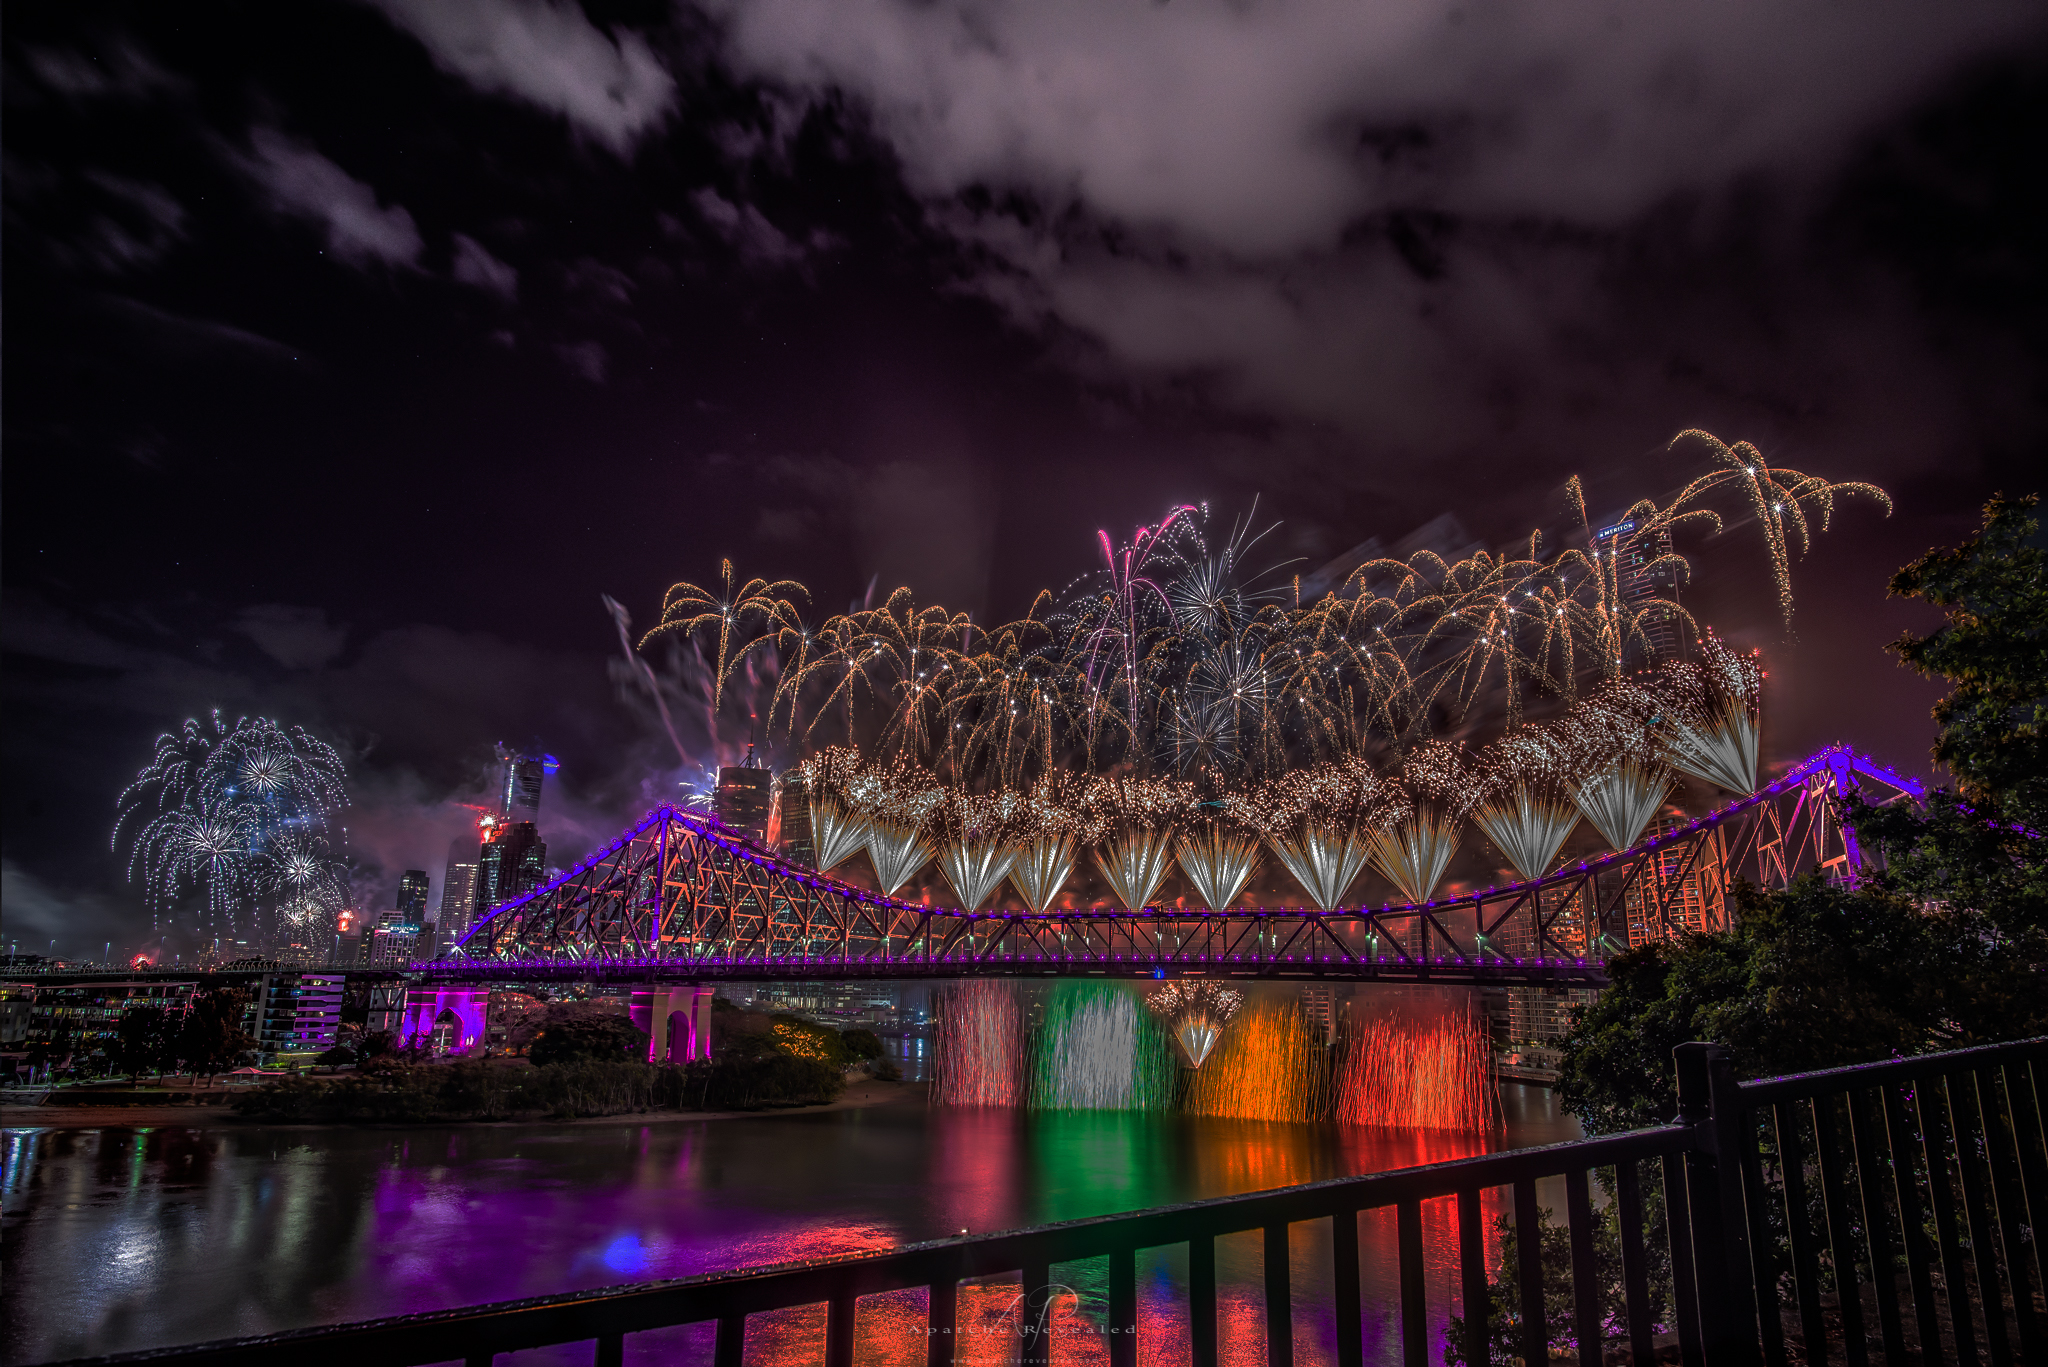 Brisbane - Brisbane, Australia. A Place where I have spent half my life exploring, A town like no other. It has put on many exciting shows for me in the past and the local surroundings are breath taking..